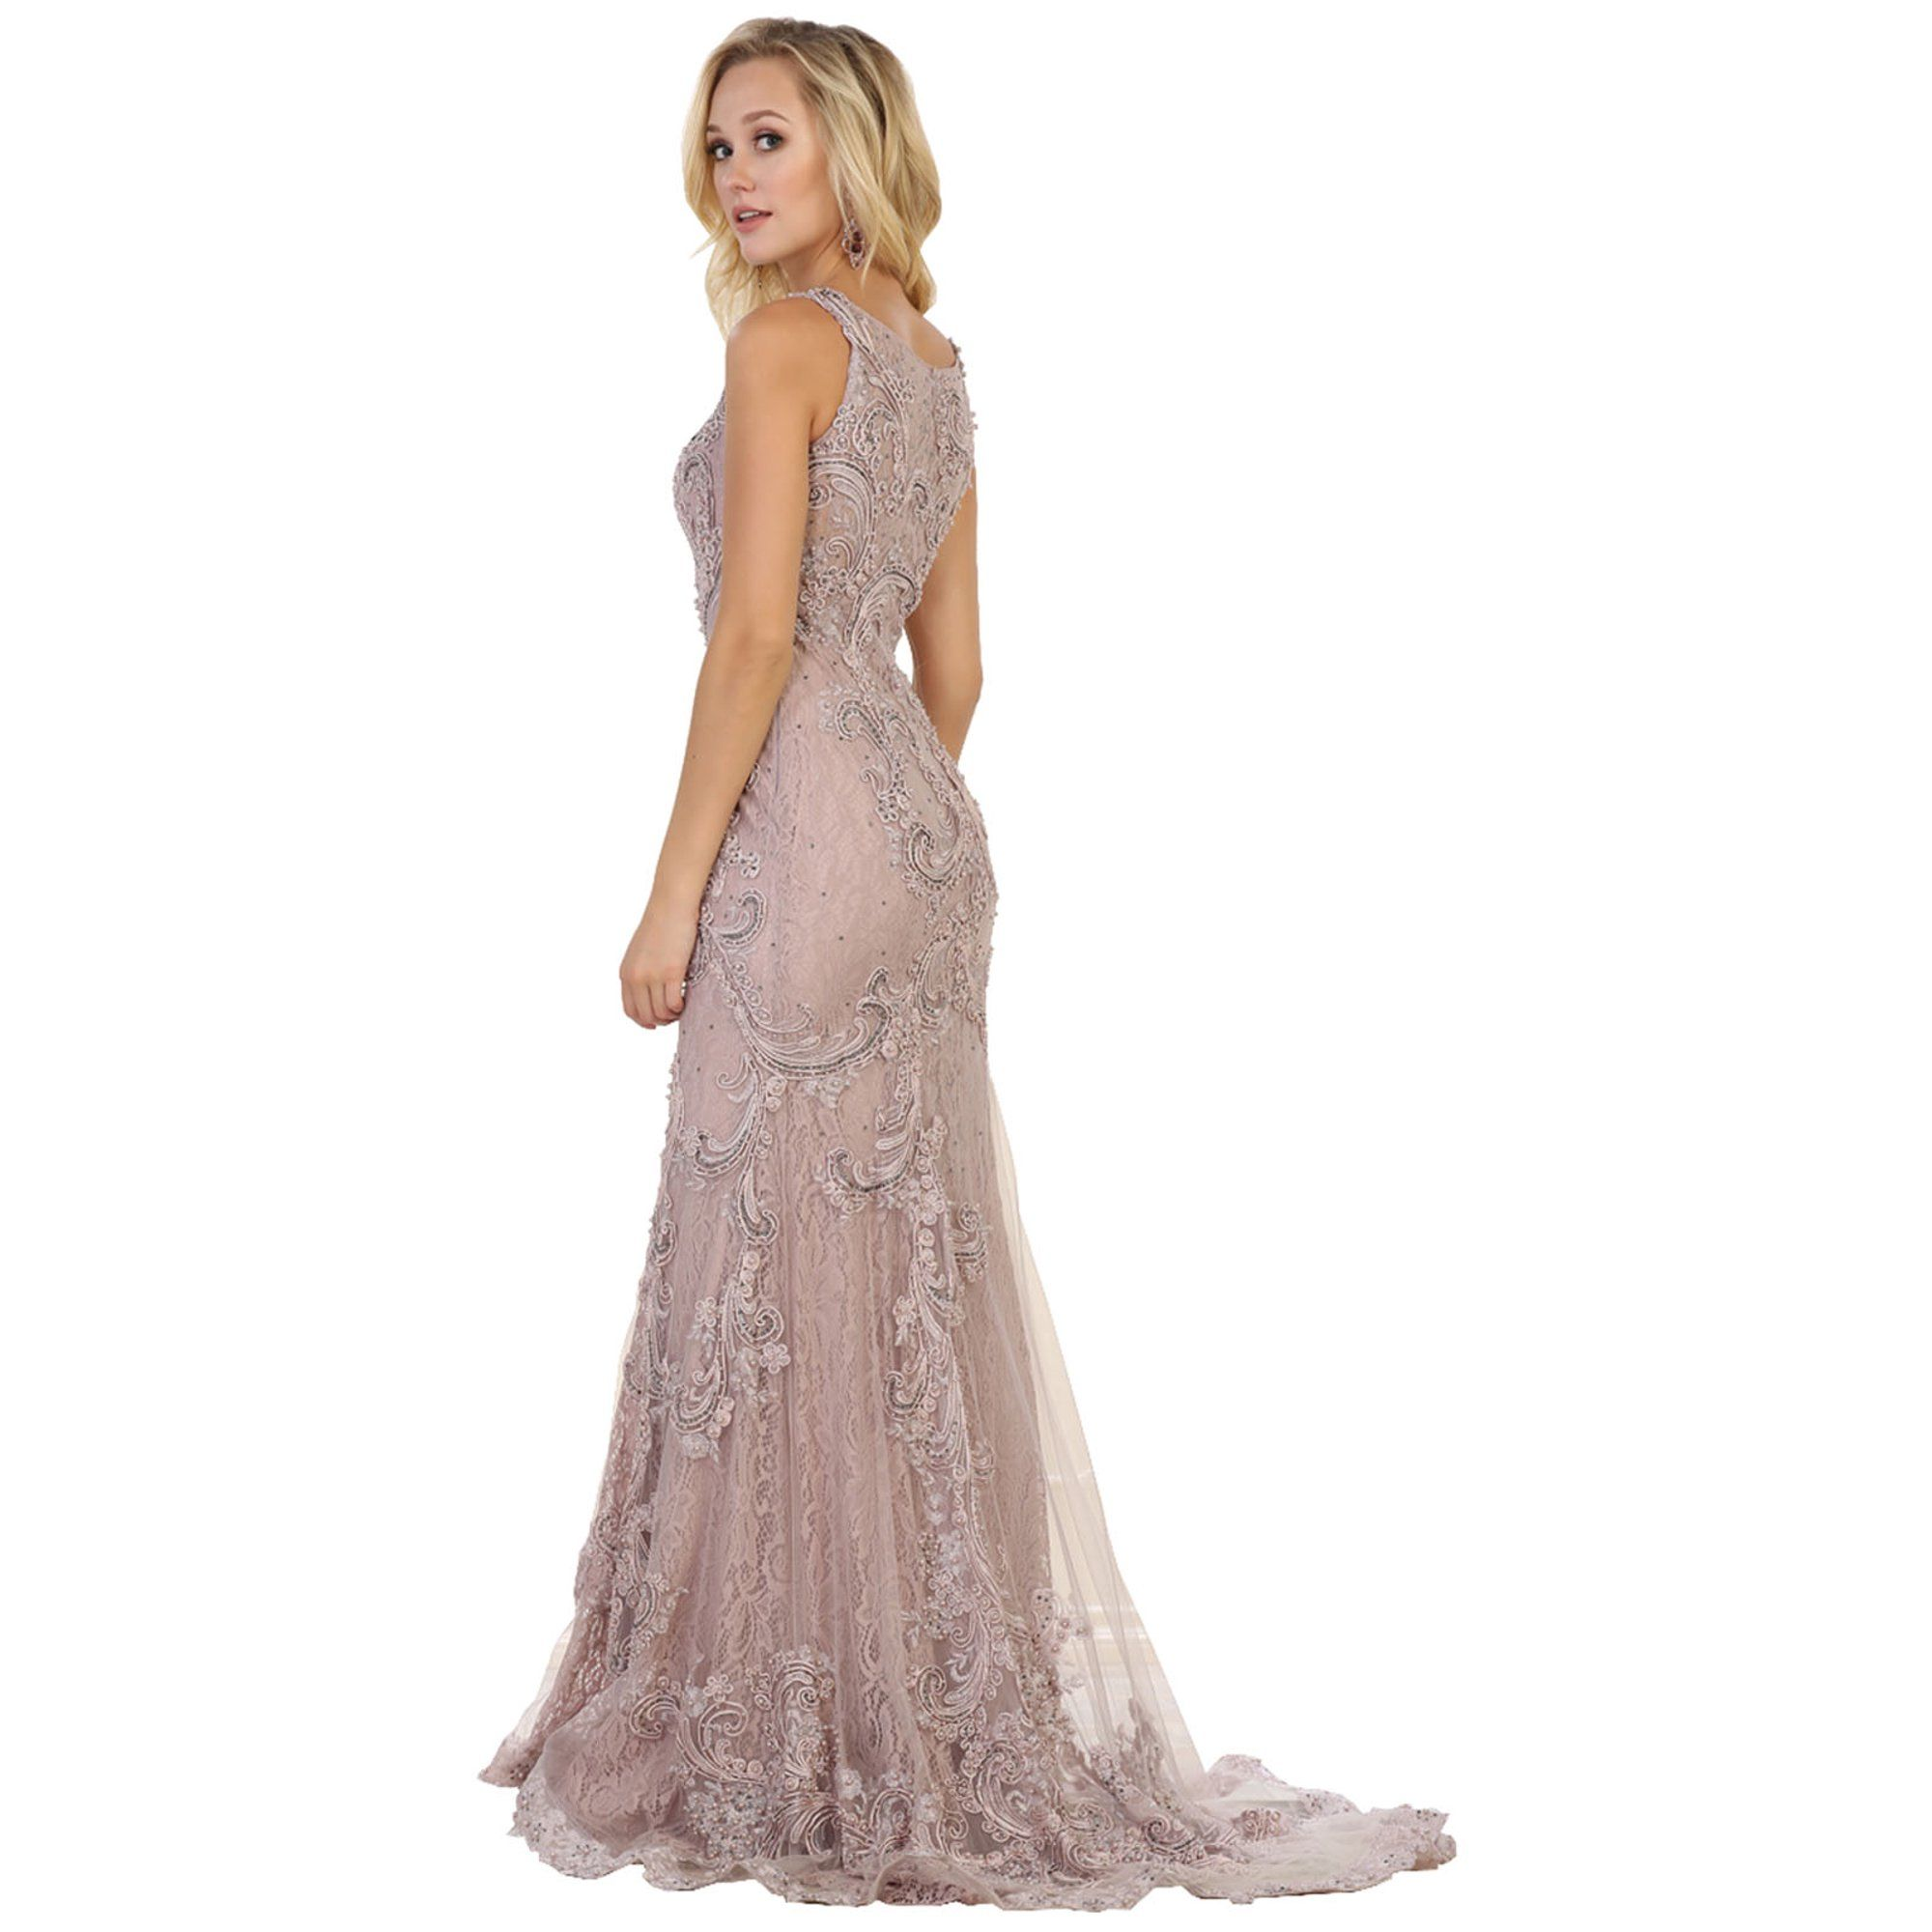 Formal Dress Shops Special Occasion Embroidered Formal Evening Gown Walmart Com Evening Gowns Formal Champagne Evening Gown Champagne Evening Dress [ 2000 x 2000 Pixel ]